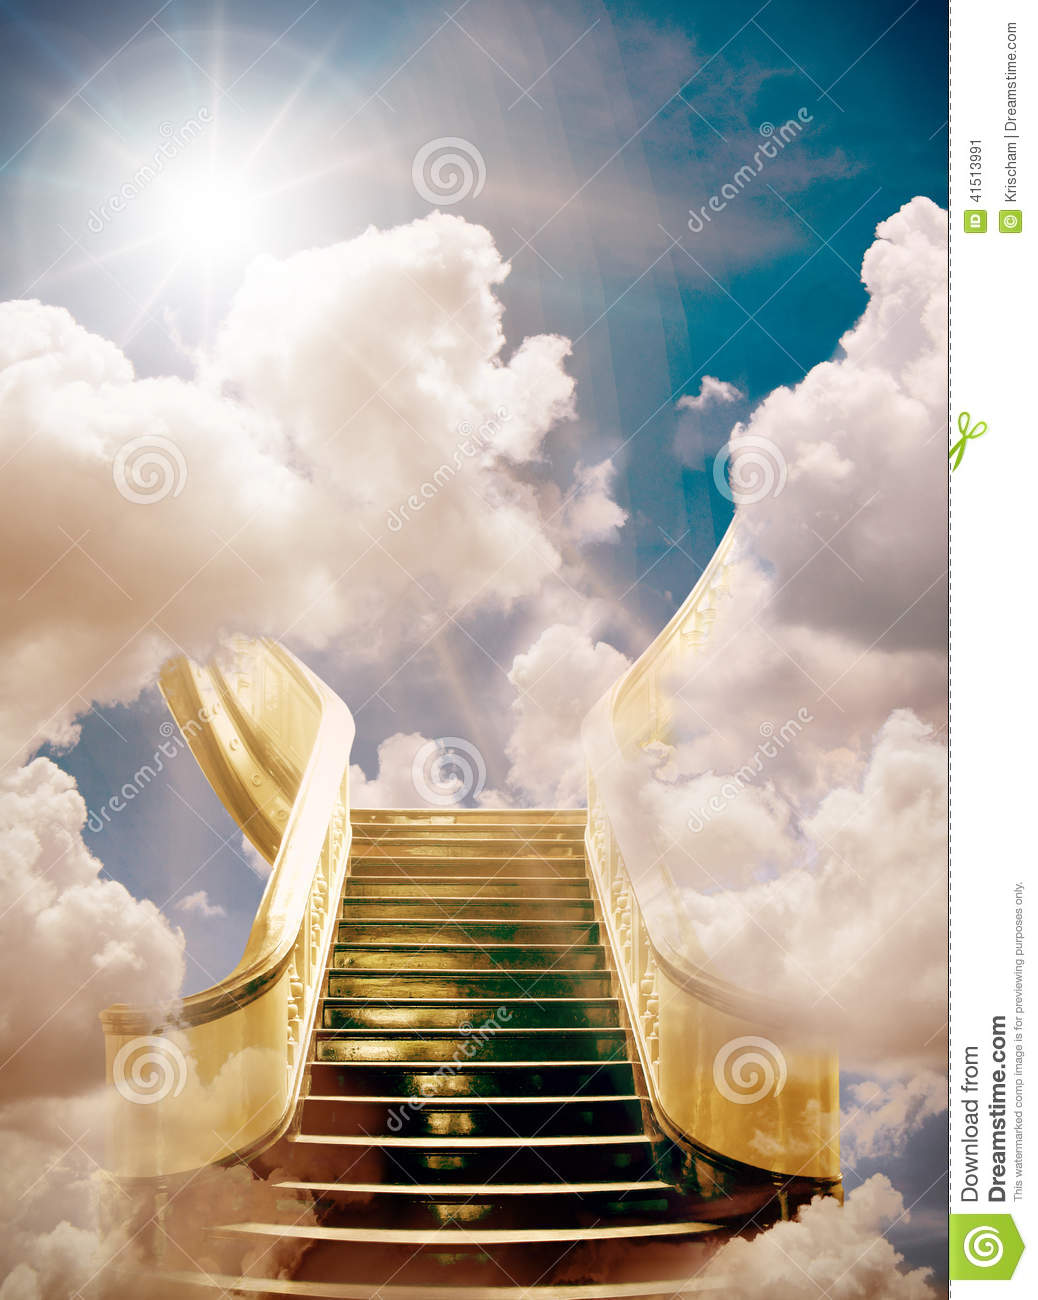 Golden stairway to heaven background.